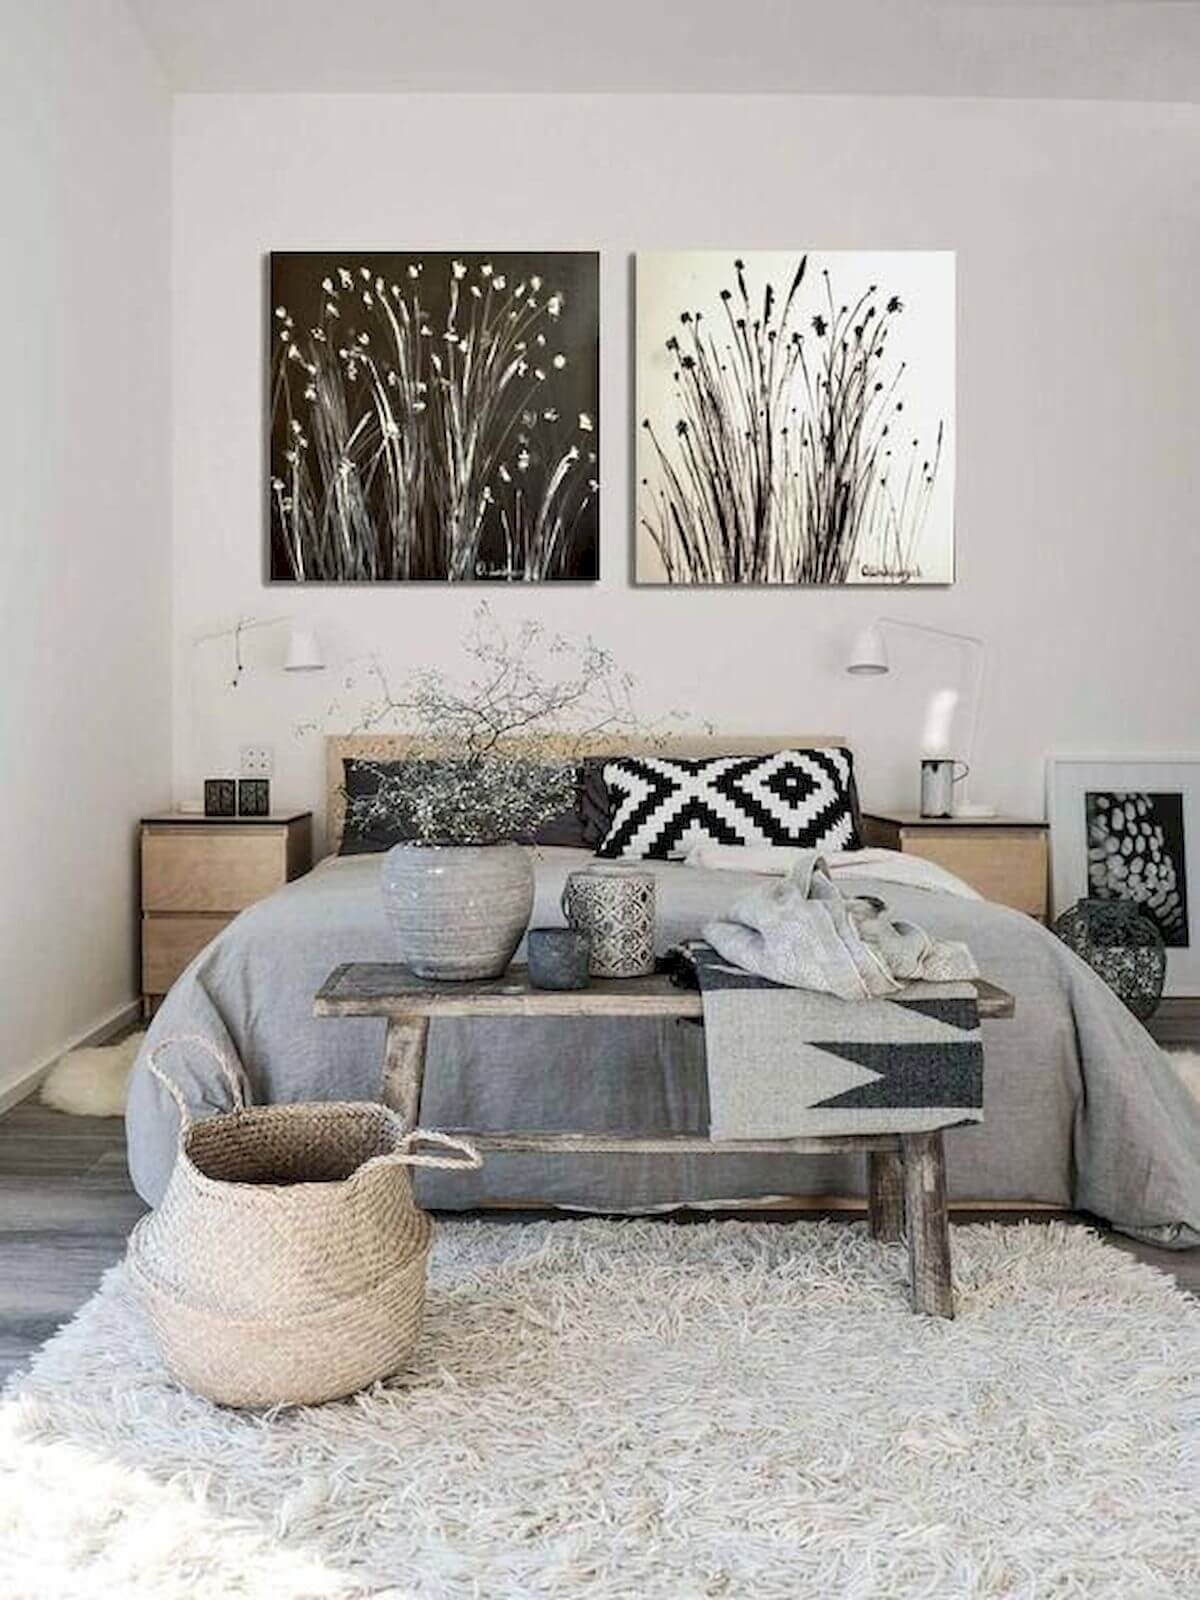 8 Best Natural Home Decor Ideas for Every Room in 8